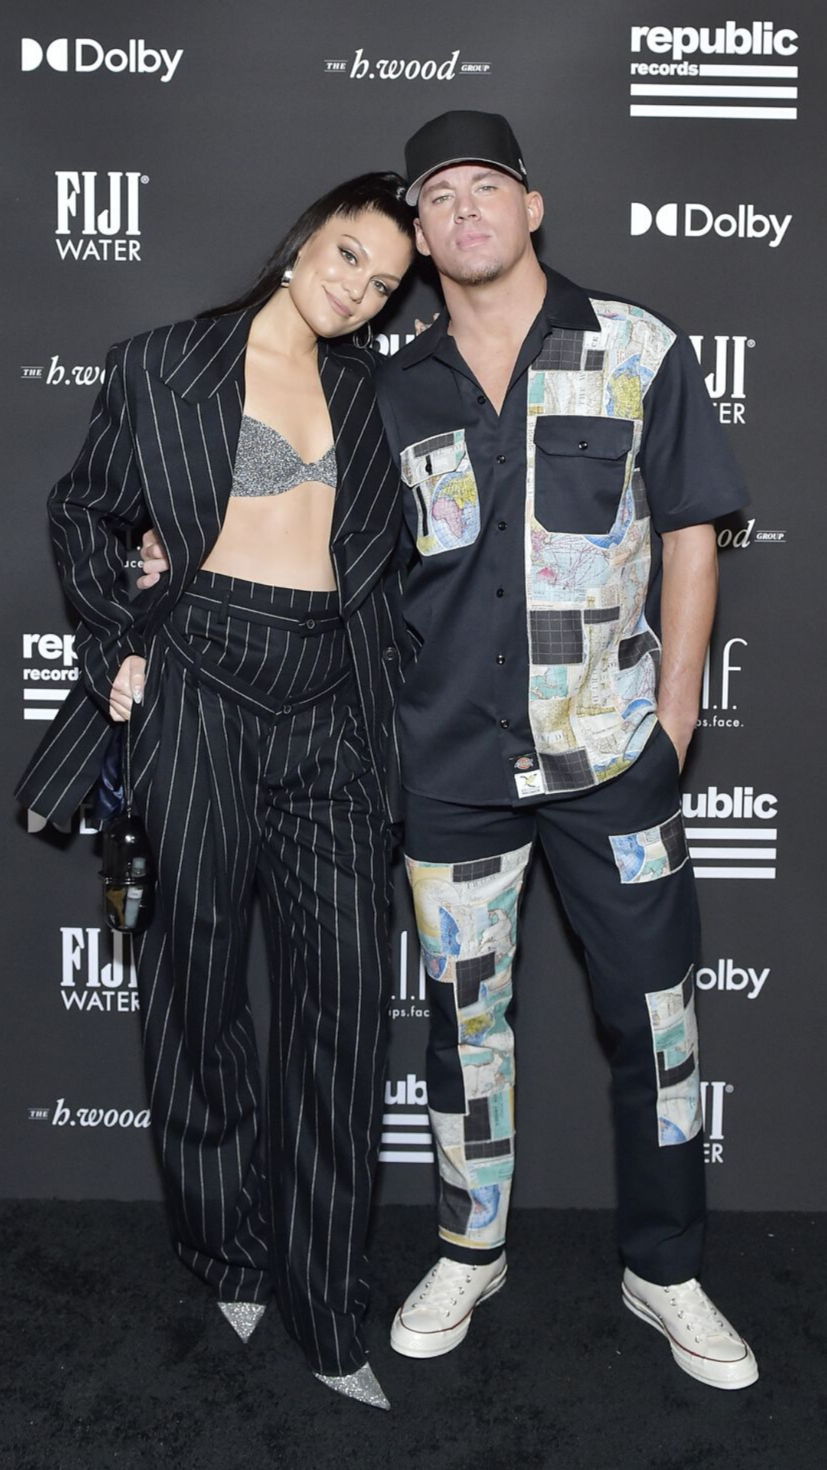 Jessie J wears a striped suit with a silver bra, while Channing Tatum wears a set from Orah LeMaitre